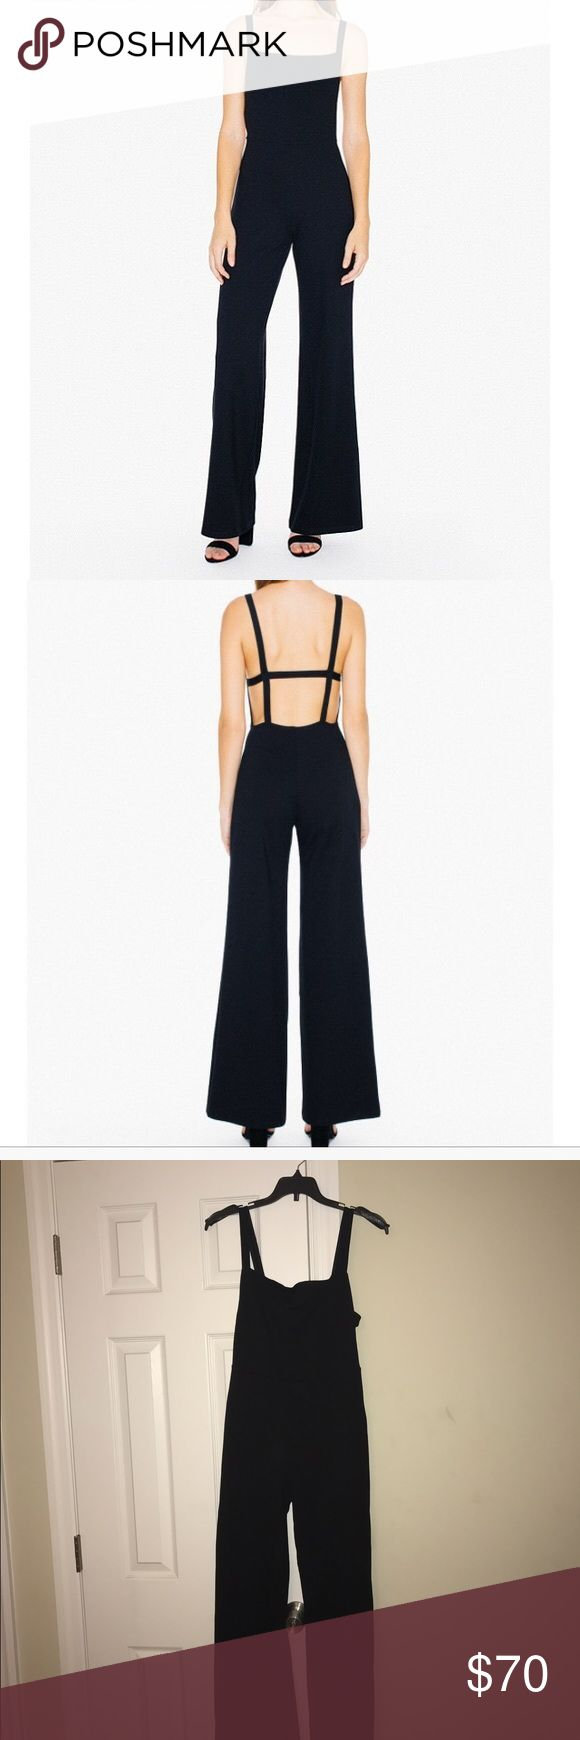 Jumpsuit Open back wide leg jumpsuit. Brand new. Extremely beautiful. American Apparel Pants Jumpsuits & Rompers